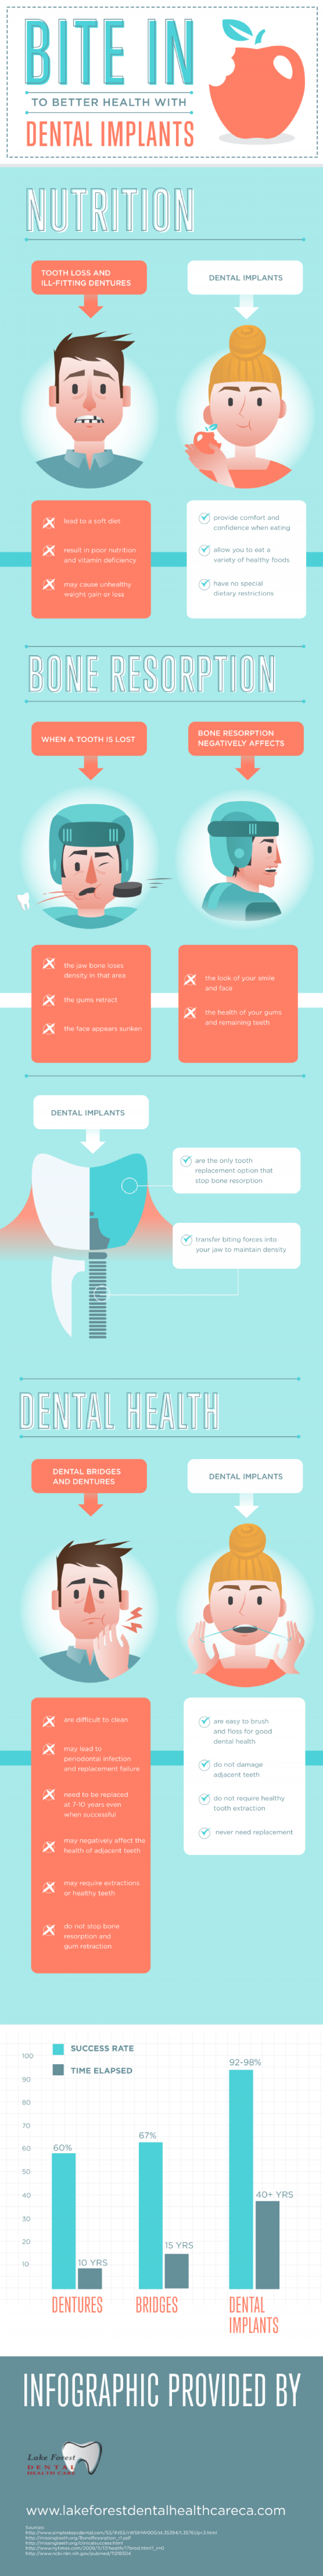 Bite into Better Health with Dental Implants Infographic